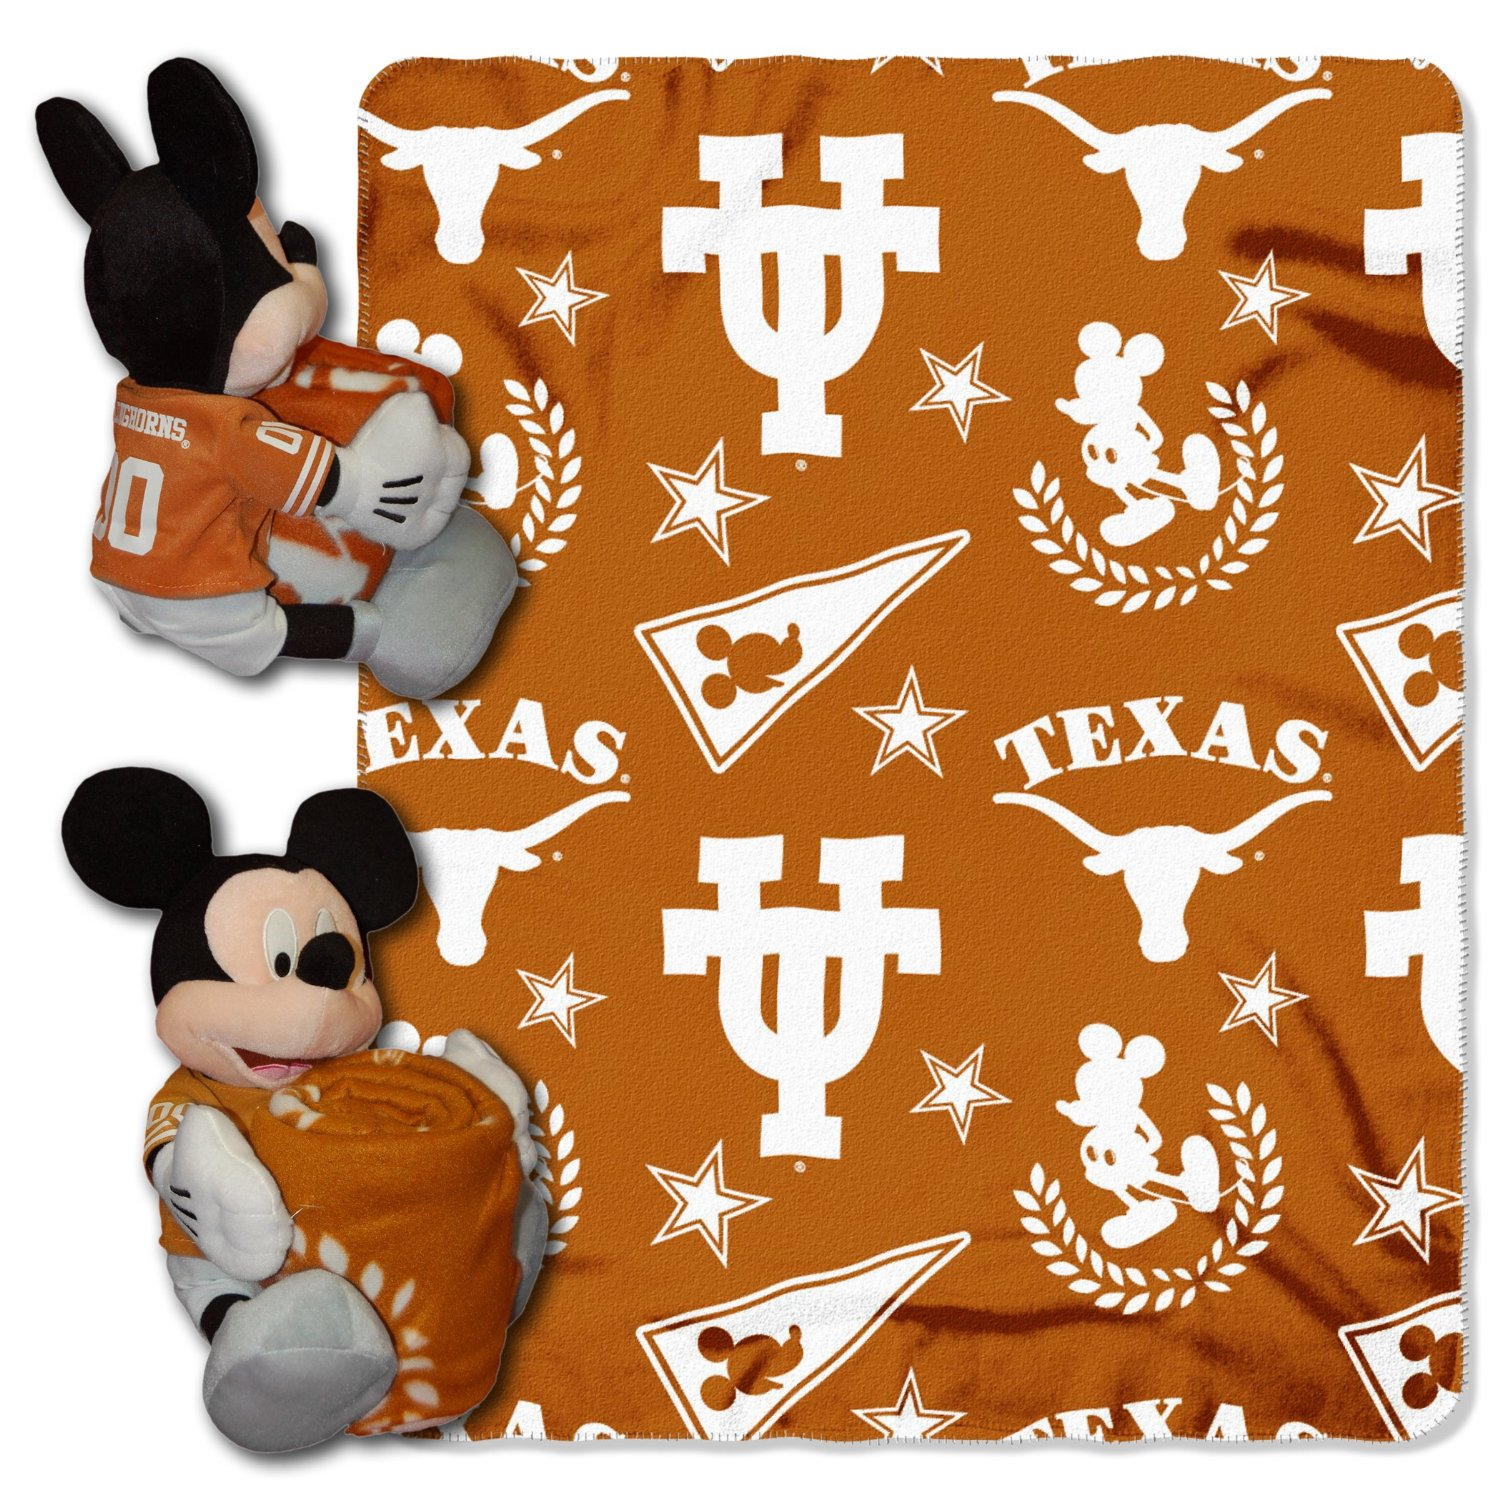 "Official NCAA and Disney Cobrand Texas Longhorns Mickey Mouse Hugger Character Shaped Pillow and 40""x 50"" Fleece Throw Set"